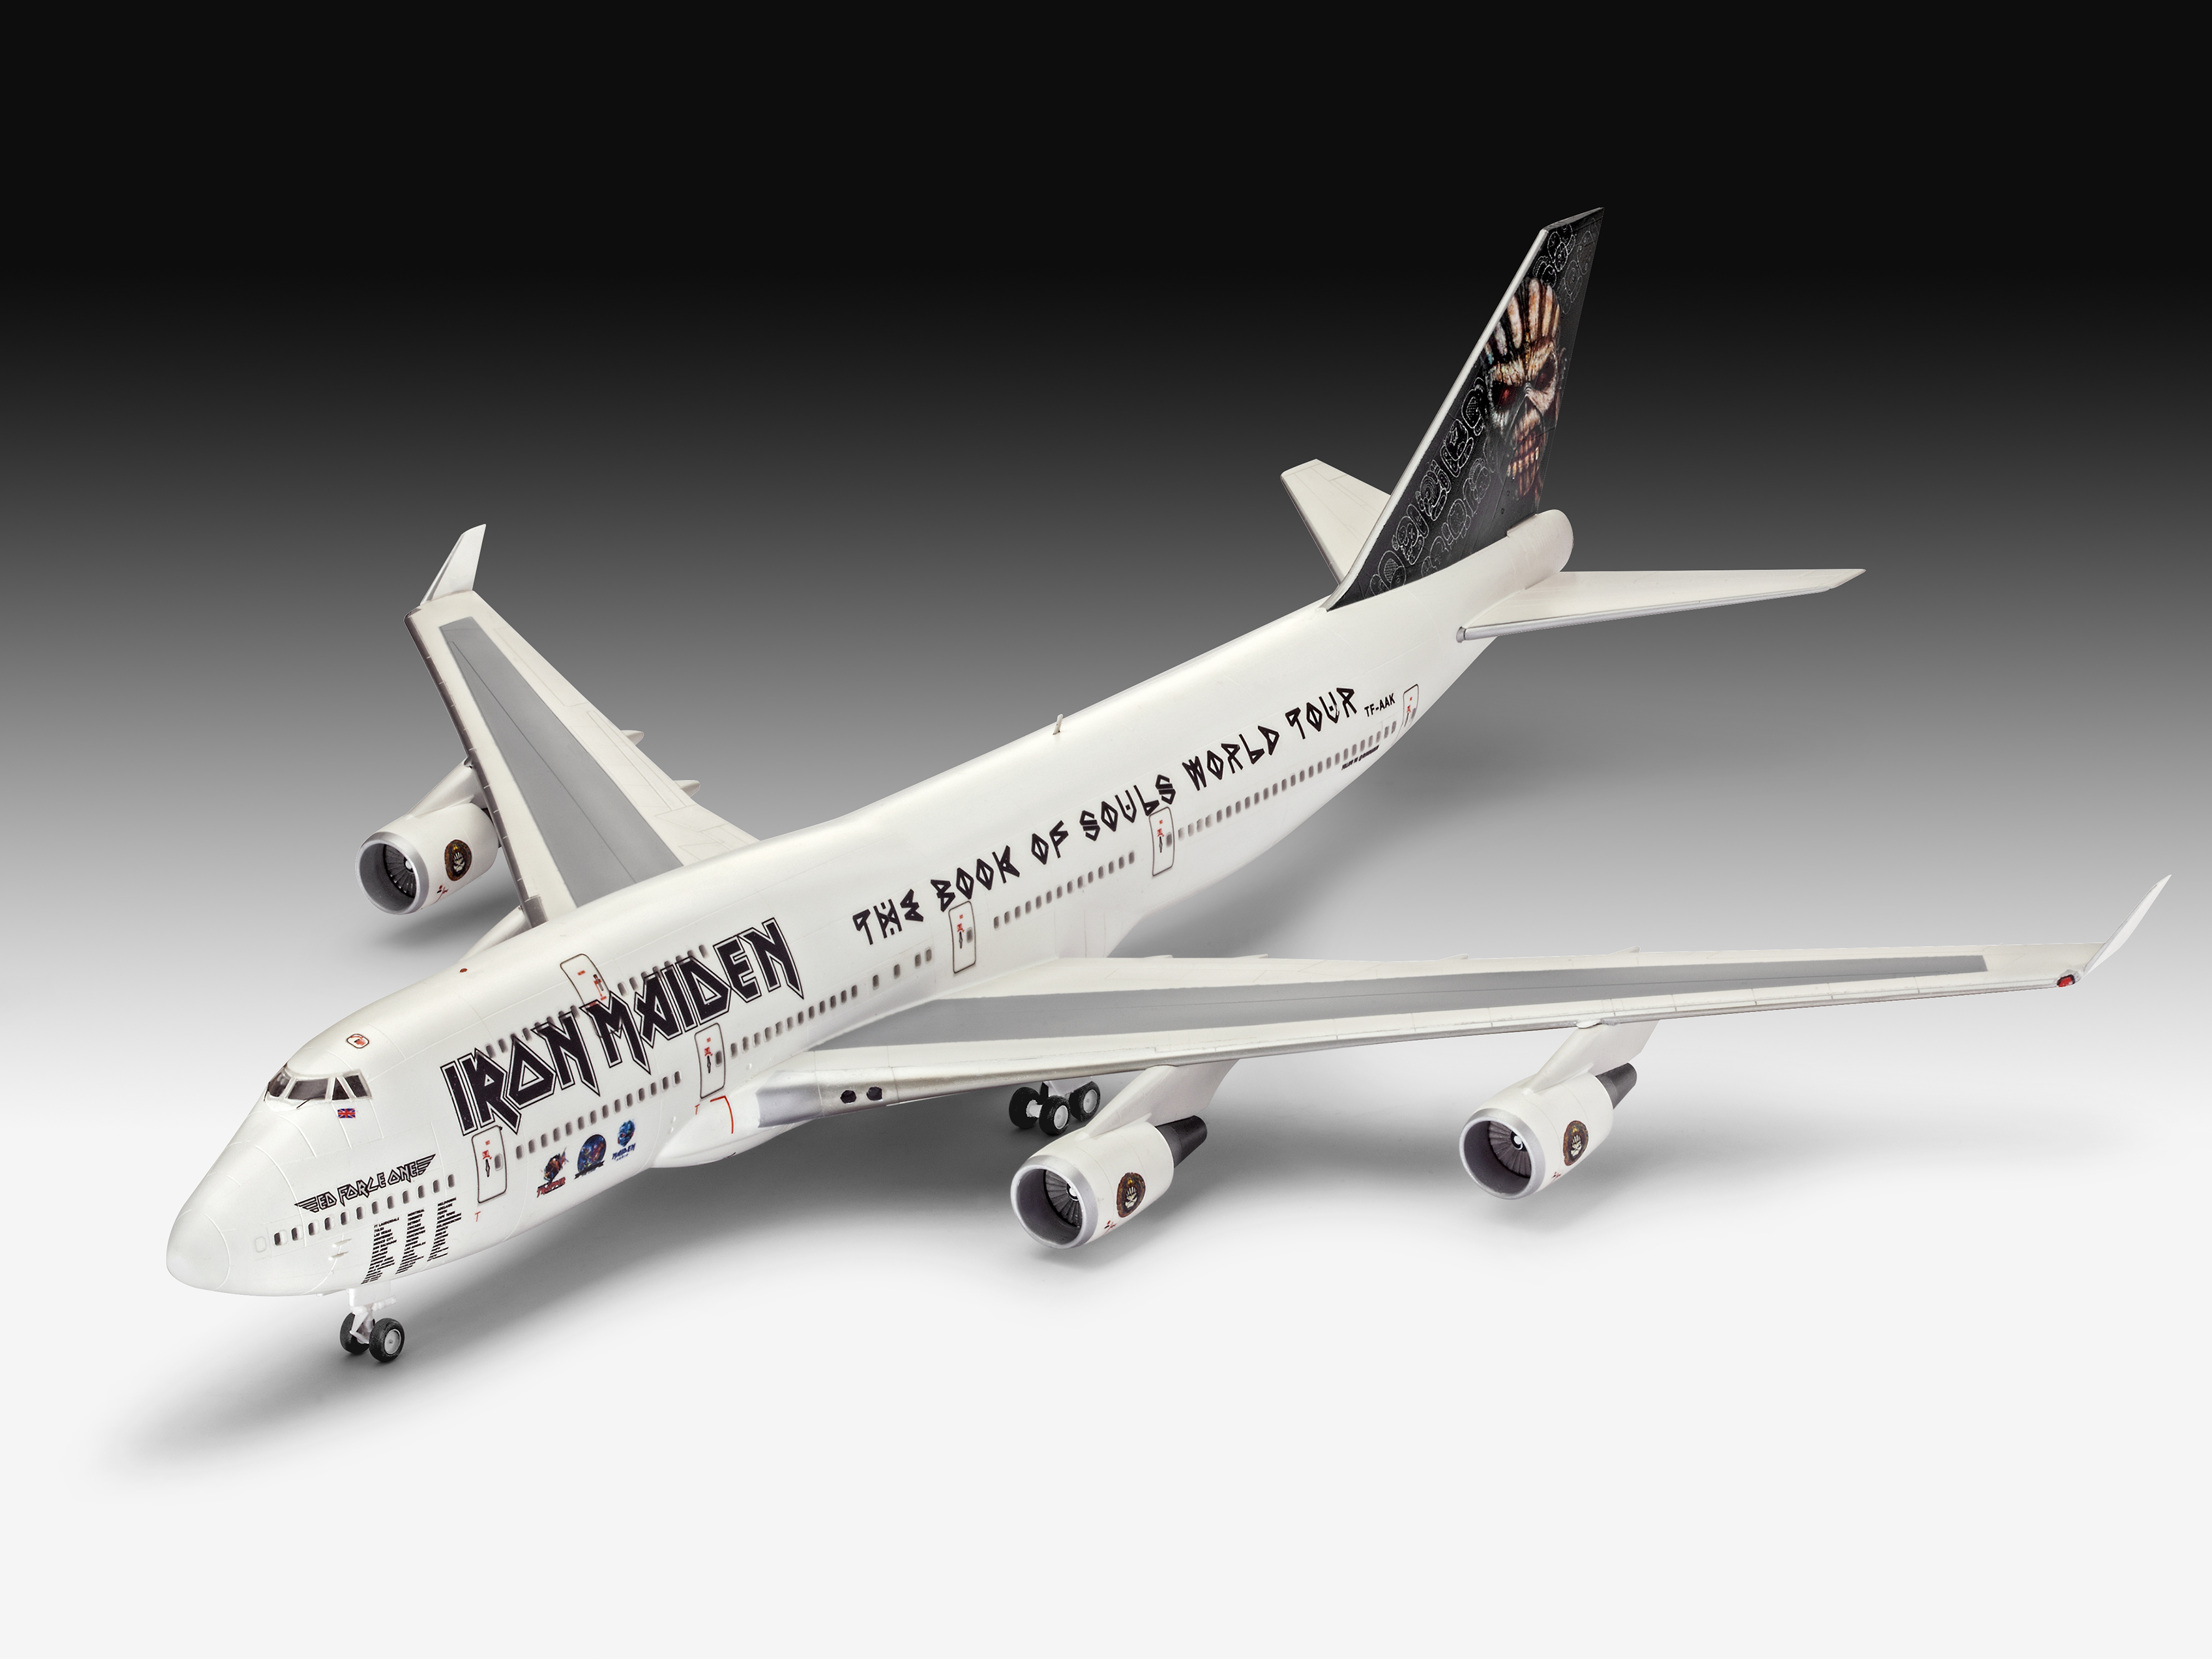 toy rc planes with Boeing 747 400 Iron Maiden on Build The Spitfire likewise Boeing 747 400 IRON MAIDEN further Drone On The Leash together with Disney Planes Rc Driving Plane Dusty likewise Watch.